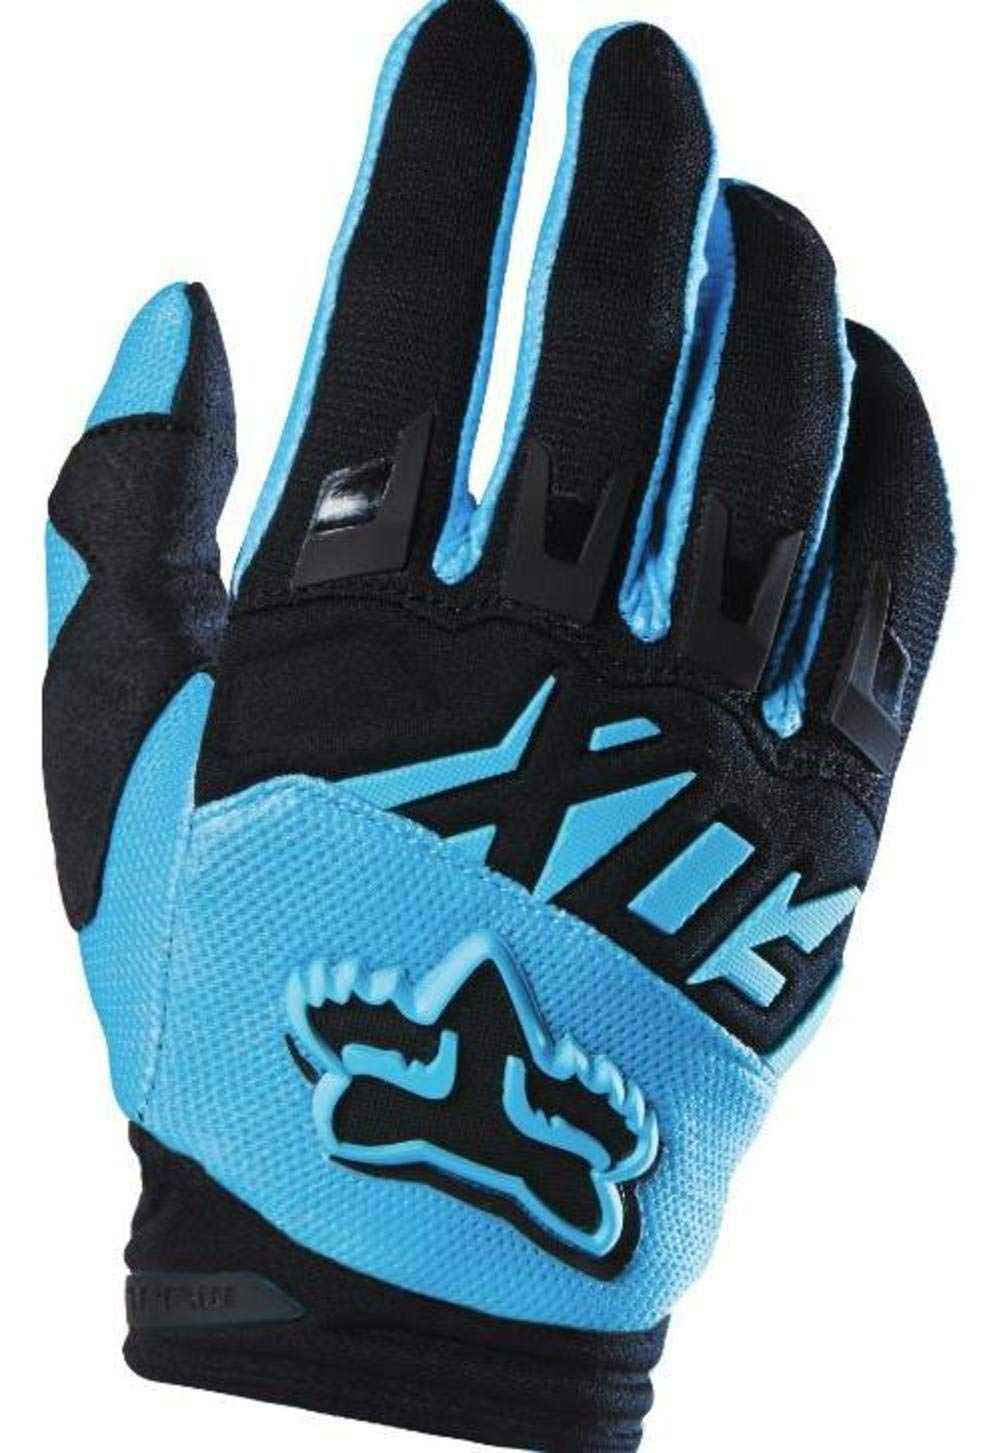 Fox Men's Dirtpaw Race Gloves, Men, Handschuhe Dirtpaw Race 14999